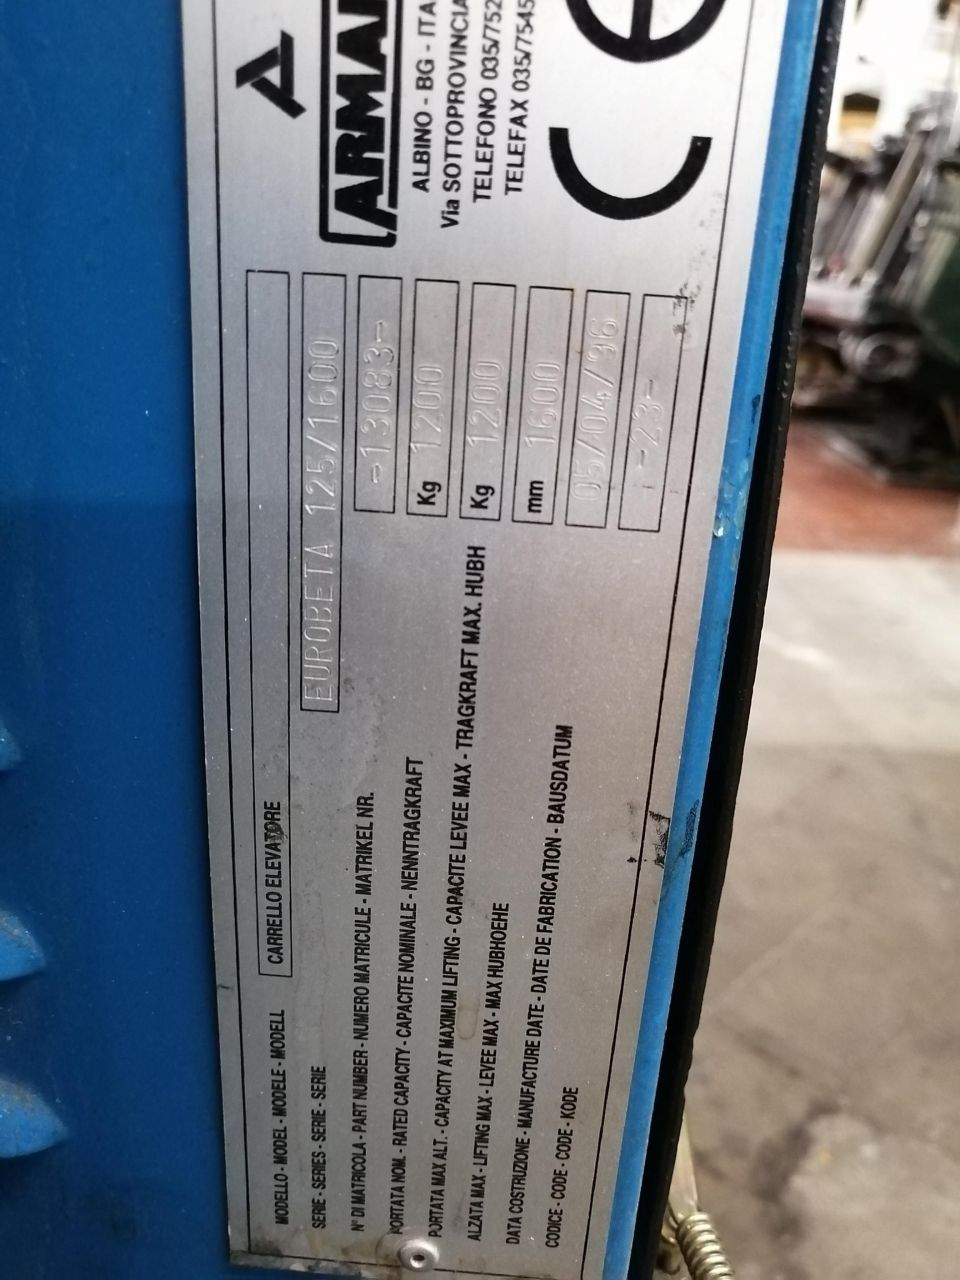 HANDLING-MATERIAL ELECTRIC PALLET TRUCK, Rocznik : 1996, ref.68334 | www.coci-sa.com/pl | 68334n.jpg